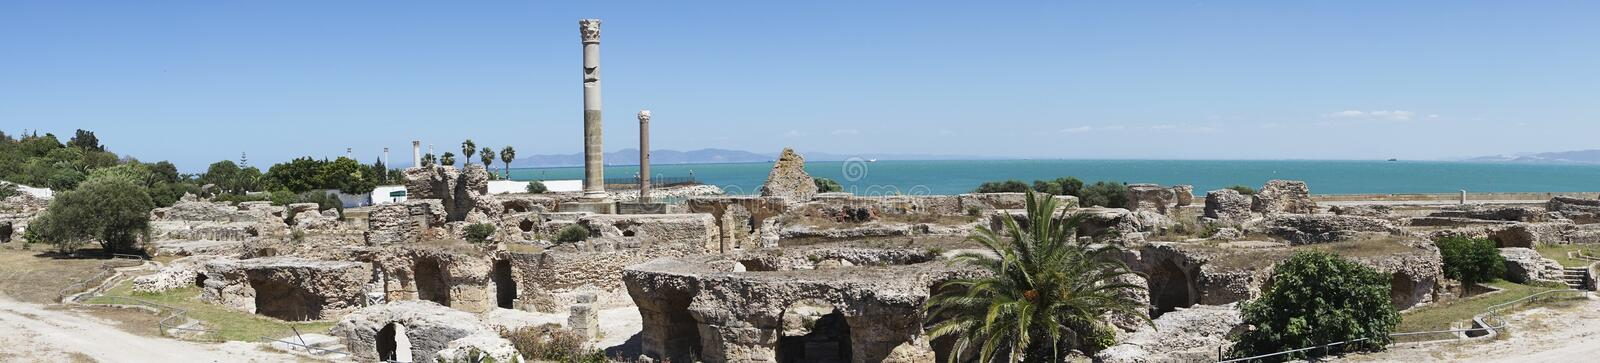 Caratagina in Tunisia. Ruins of Cartagina - monument in Tunisia. Thermes of Antonin. Panoramic photo stock photos